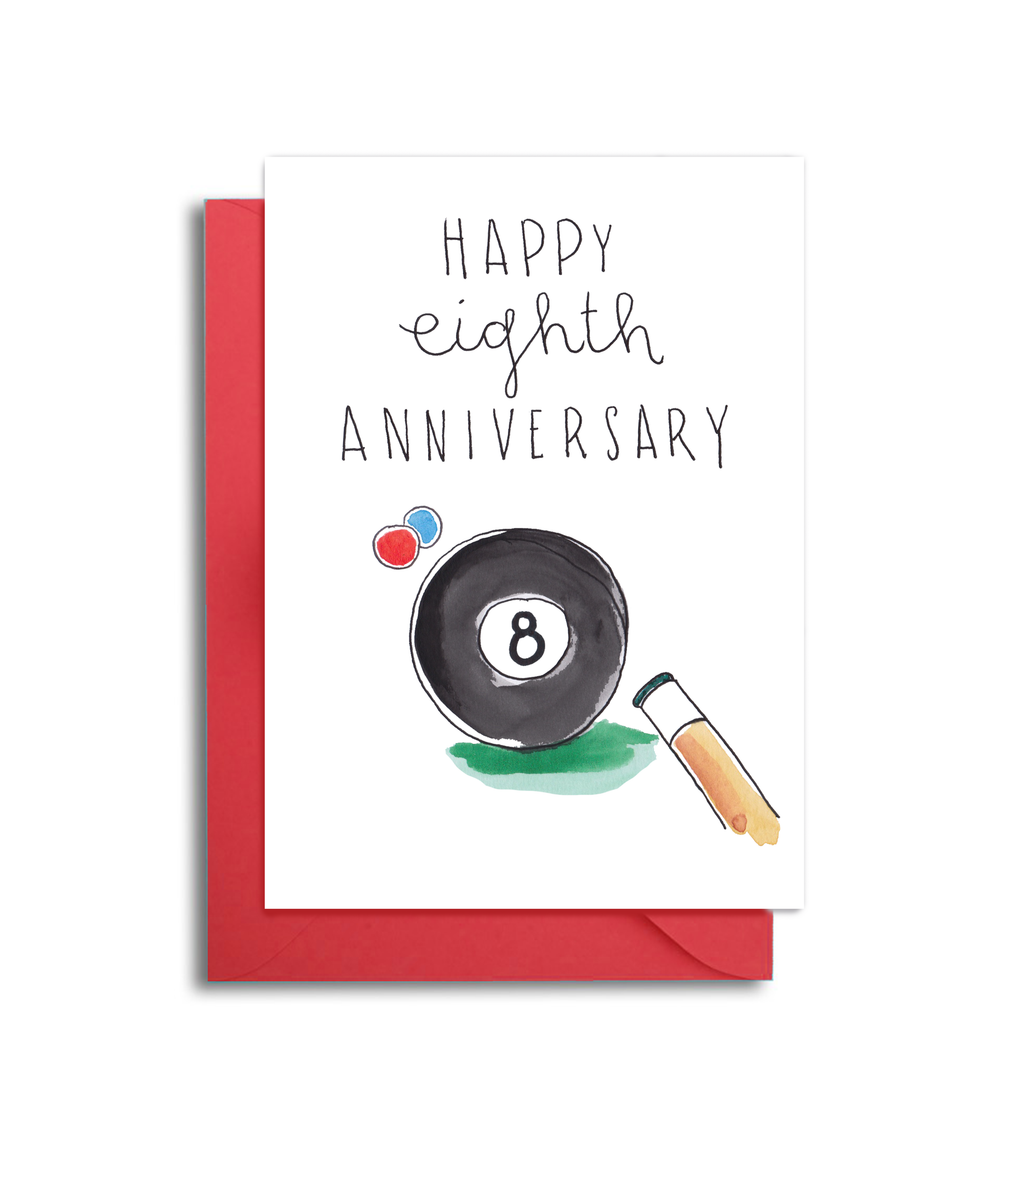 Eighth Wedding Anniversary Card - 8th Anniversary Husband Card - Billiards Themed Anniversary Card - Bowling Themed Anniversary